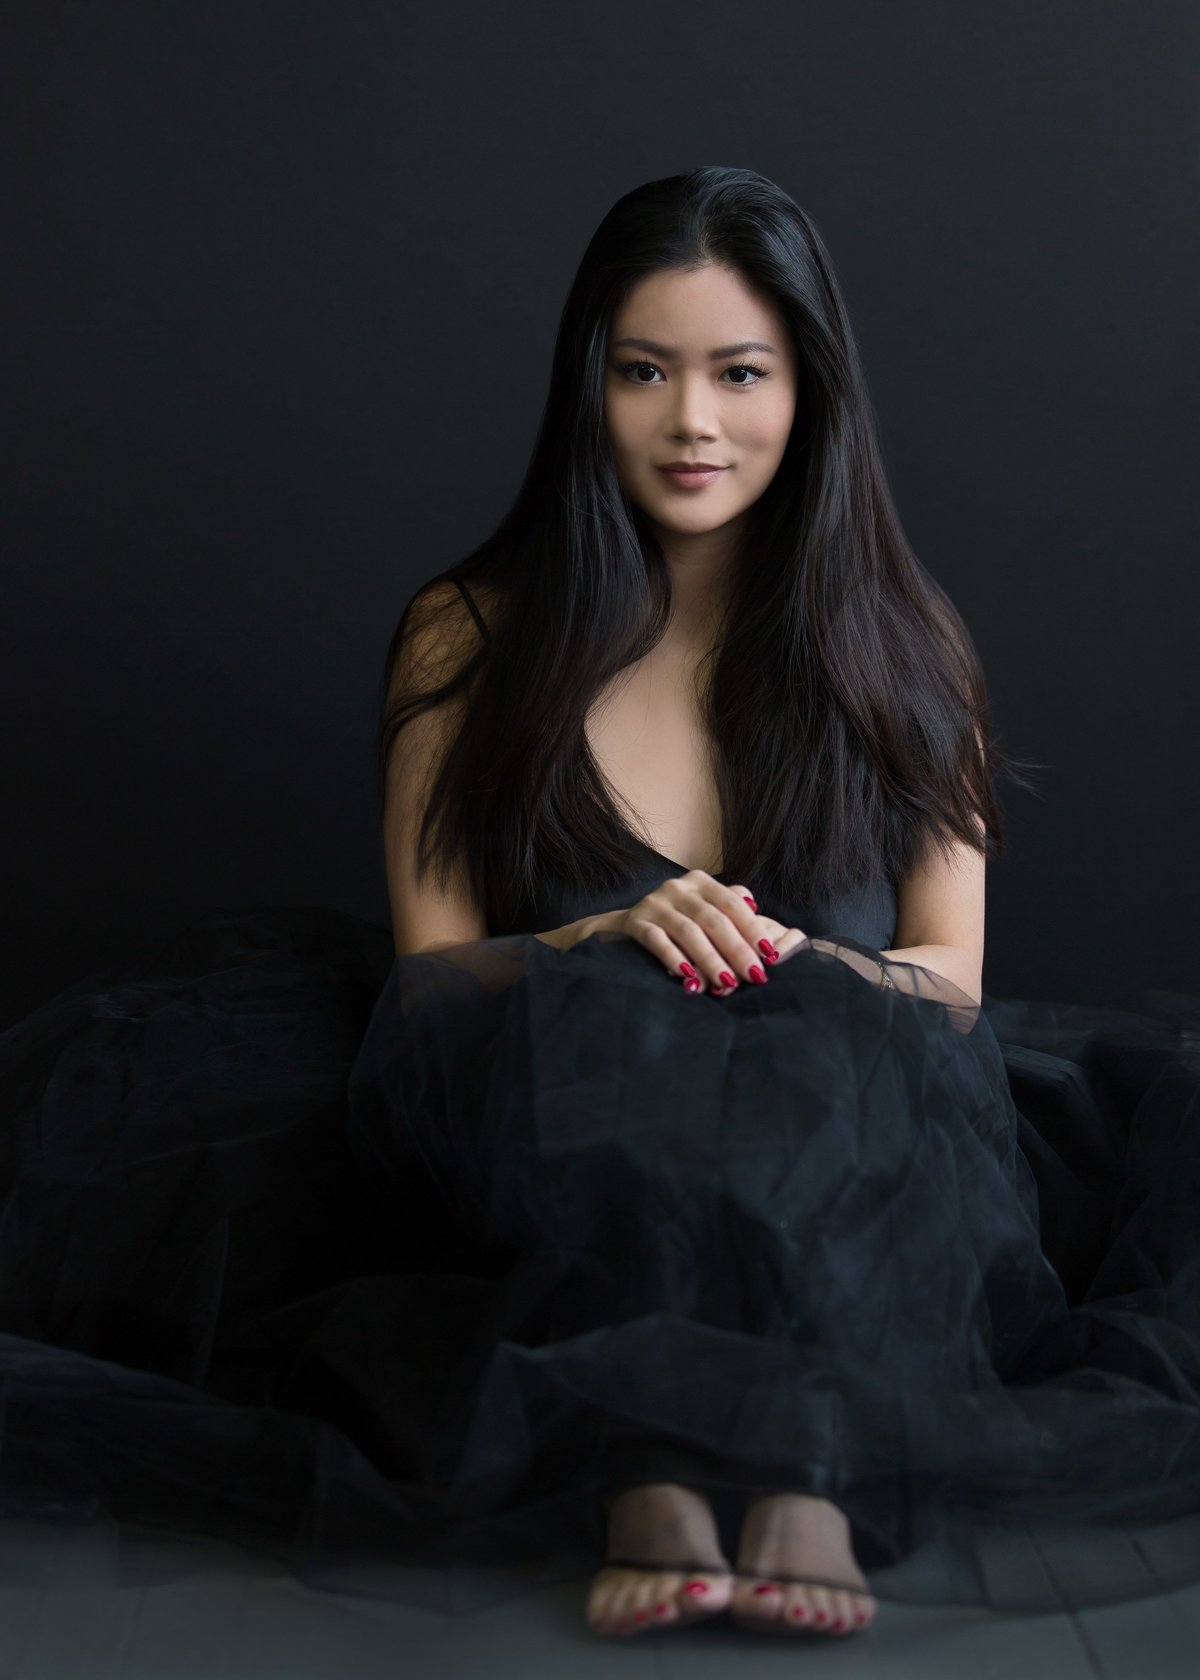 Studio portrait of young woman in black tulle skirt in New Haven, CT by Karissa Van Tassel